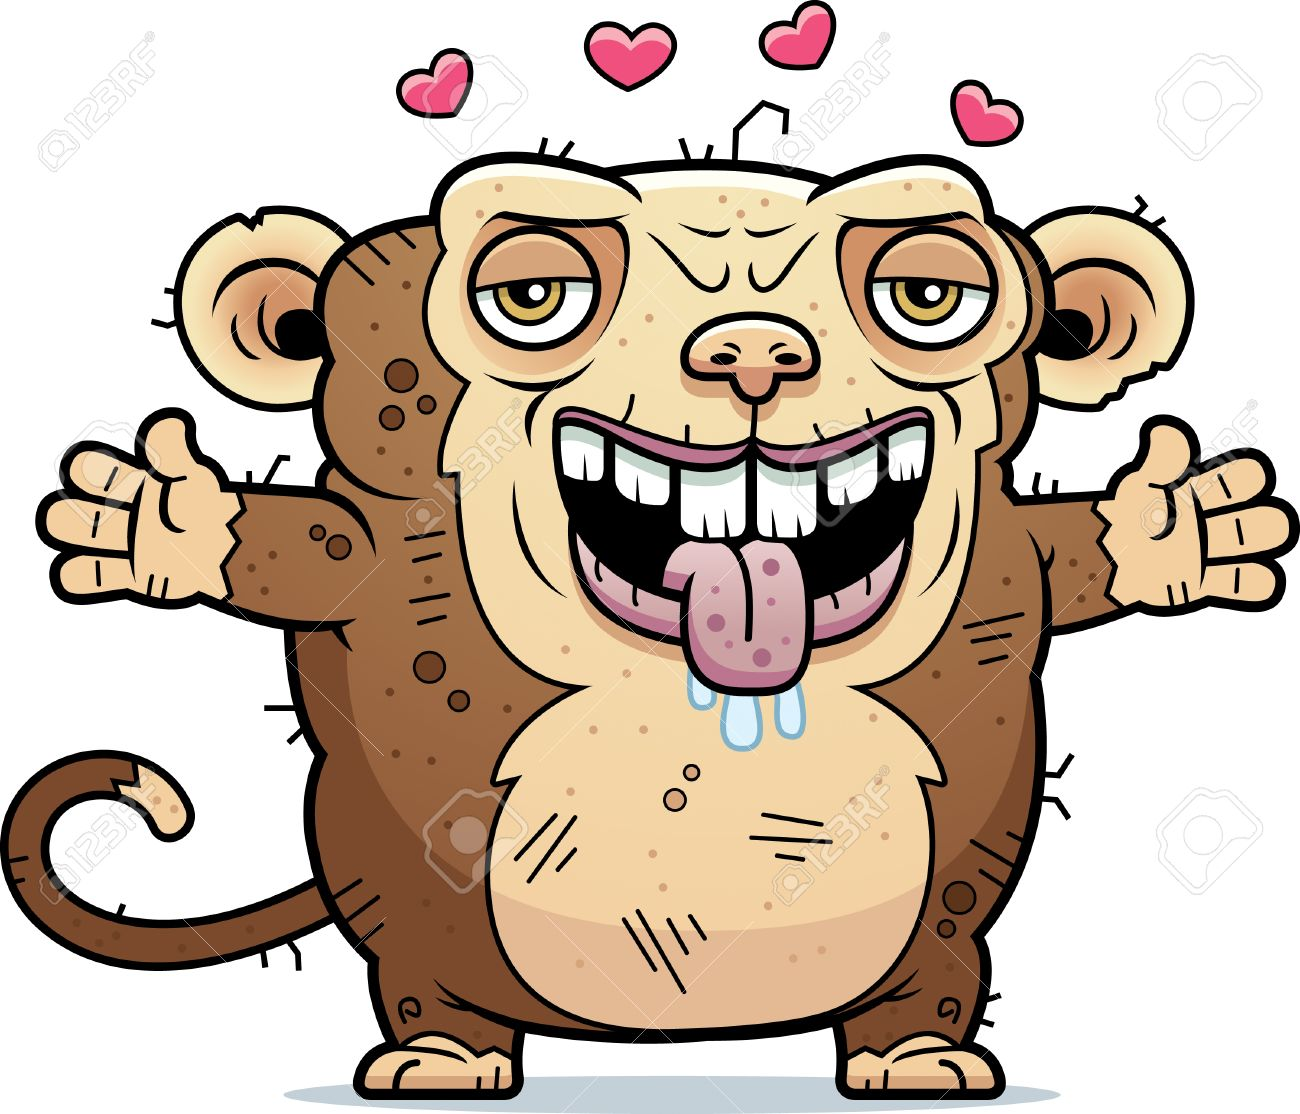 A Cartoon Illustration Of An Ugly Monkey Ready To Give A Hug Royalty Free Cliparts Vectors And Stock Illustration Image 42751330